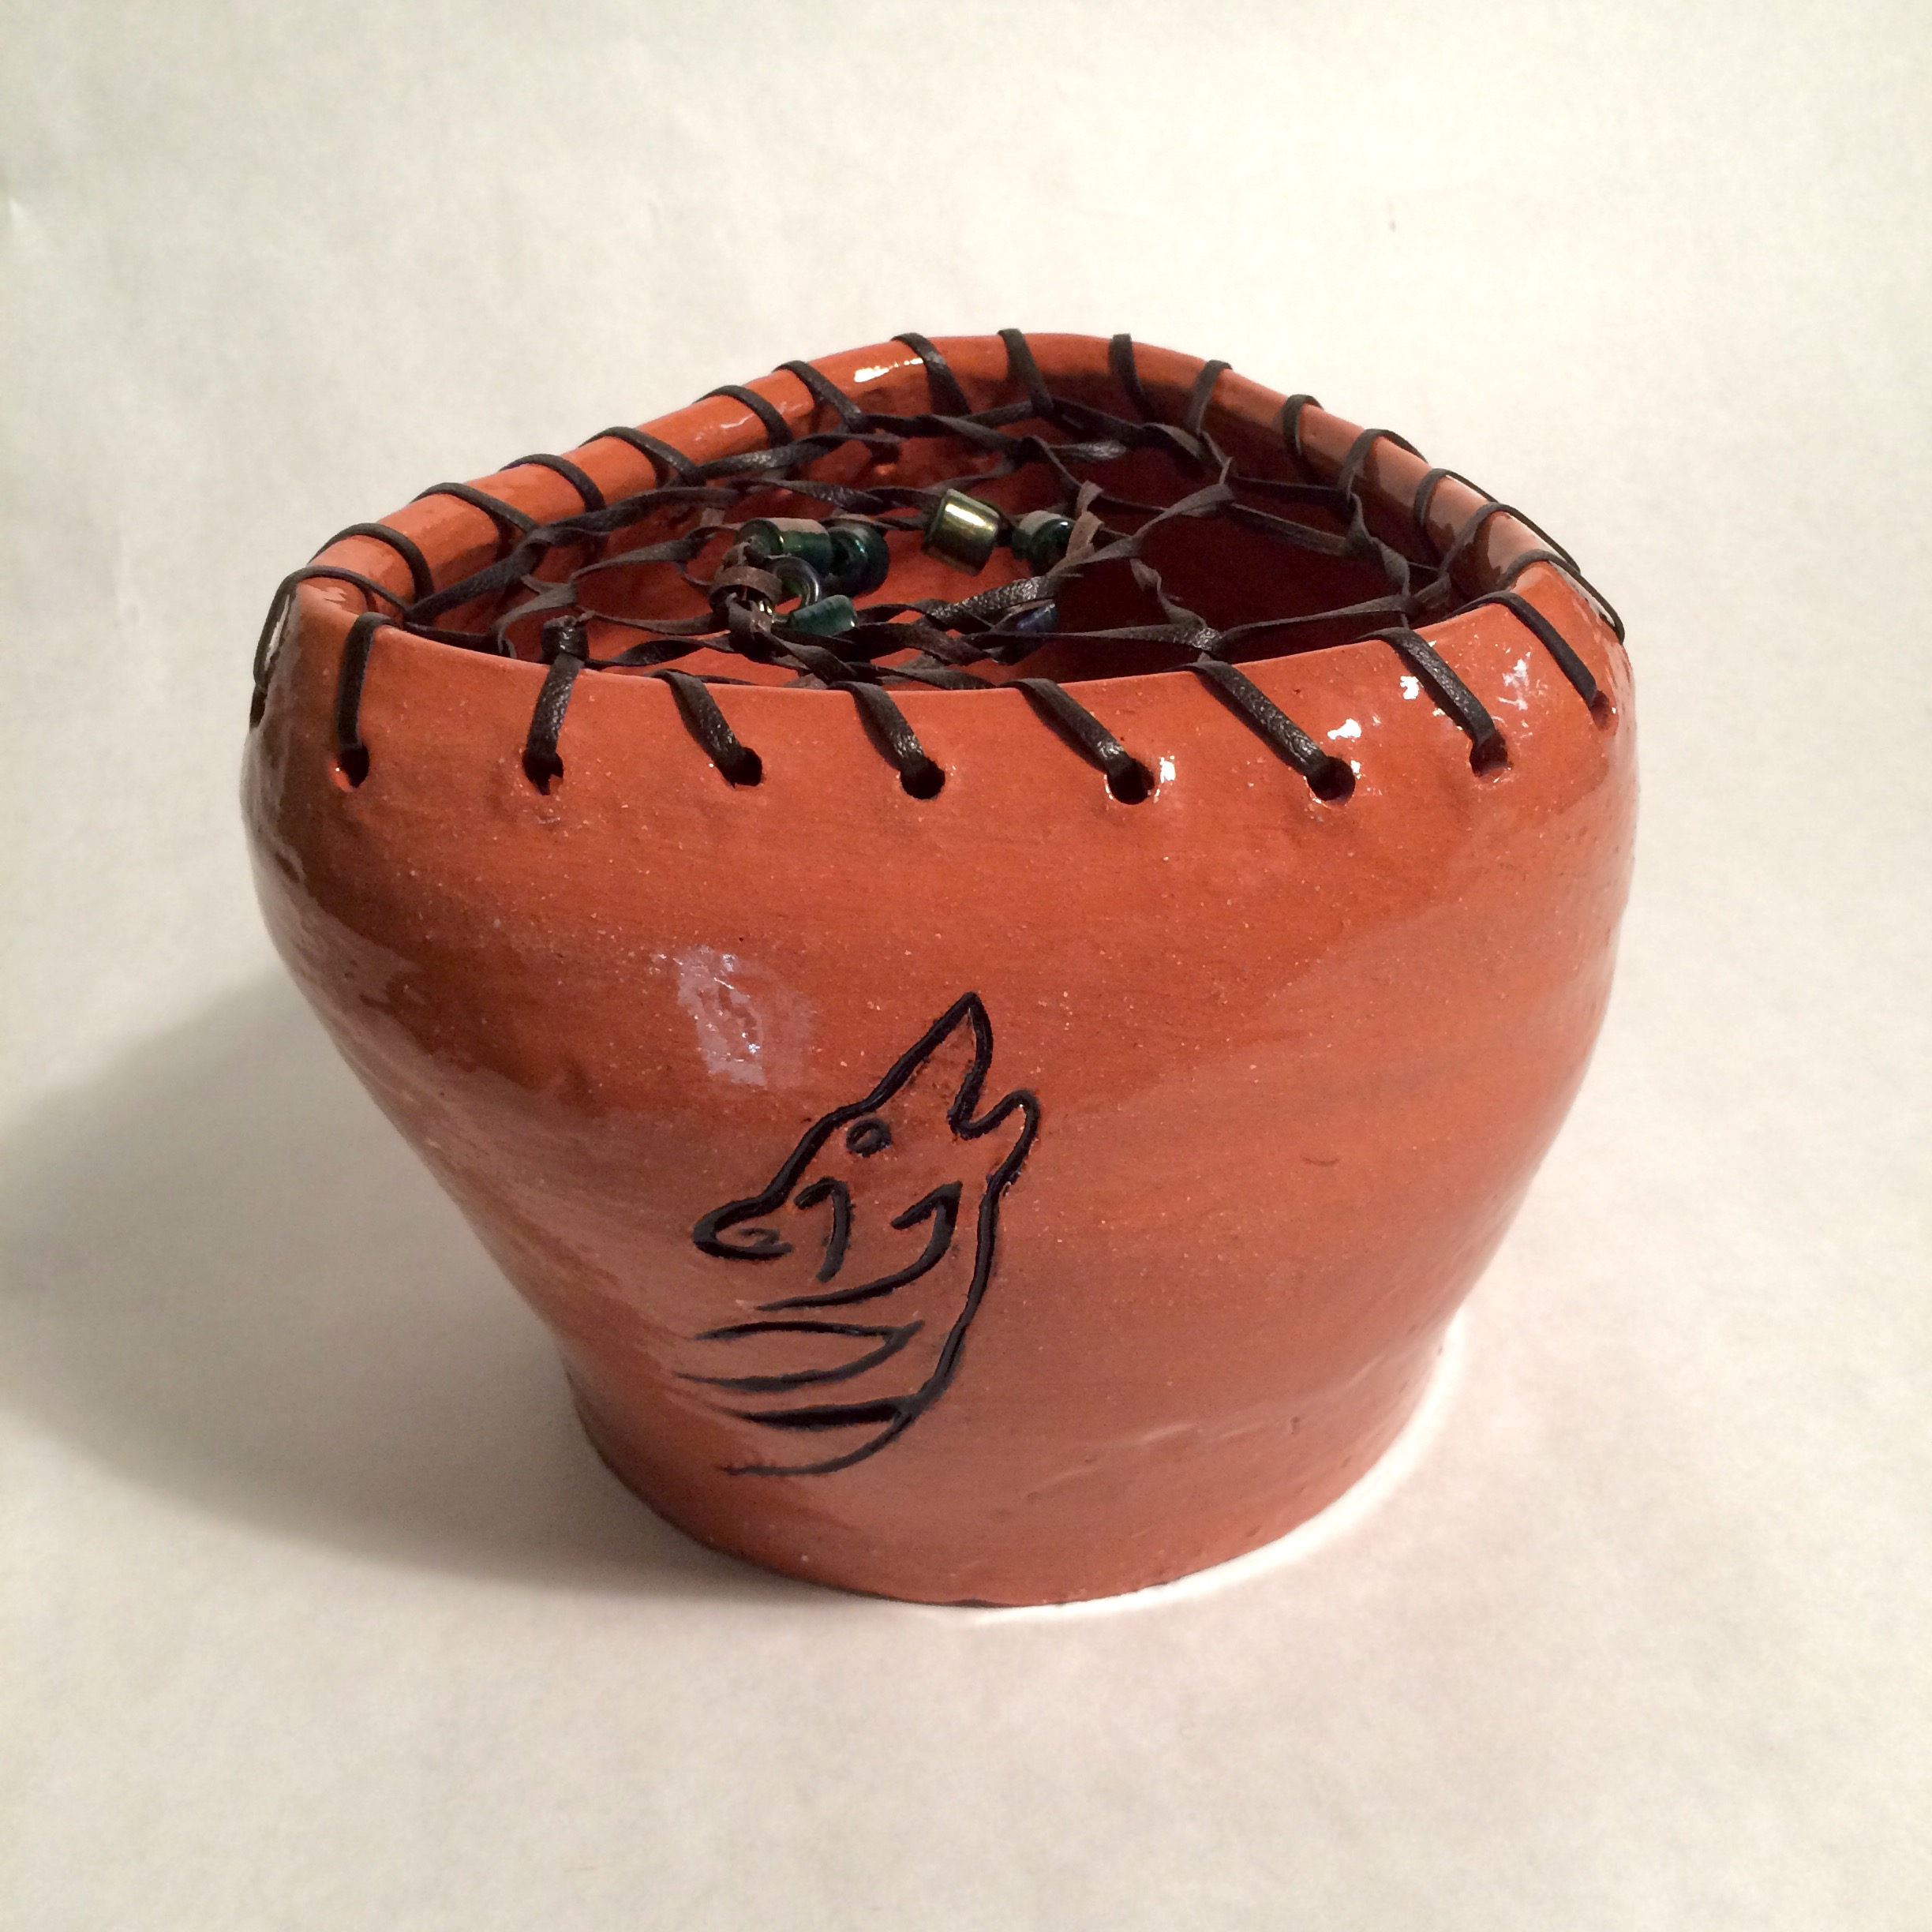 Ceramic Pot with Dreamcatcher